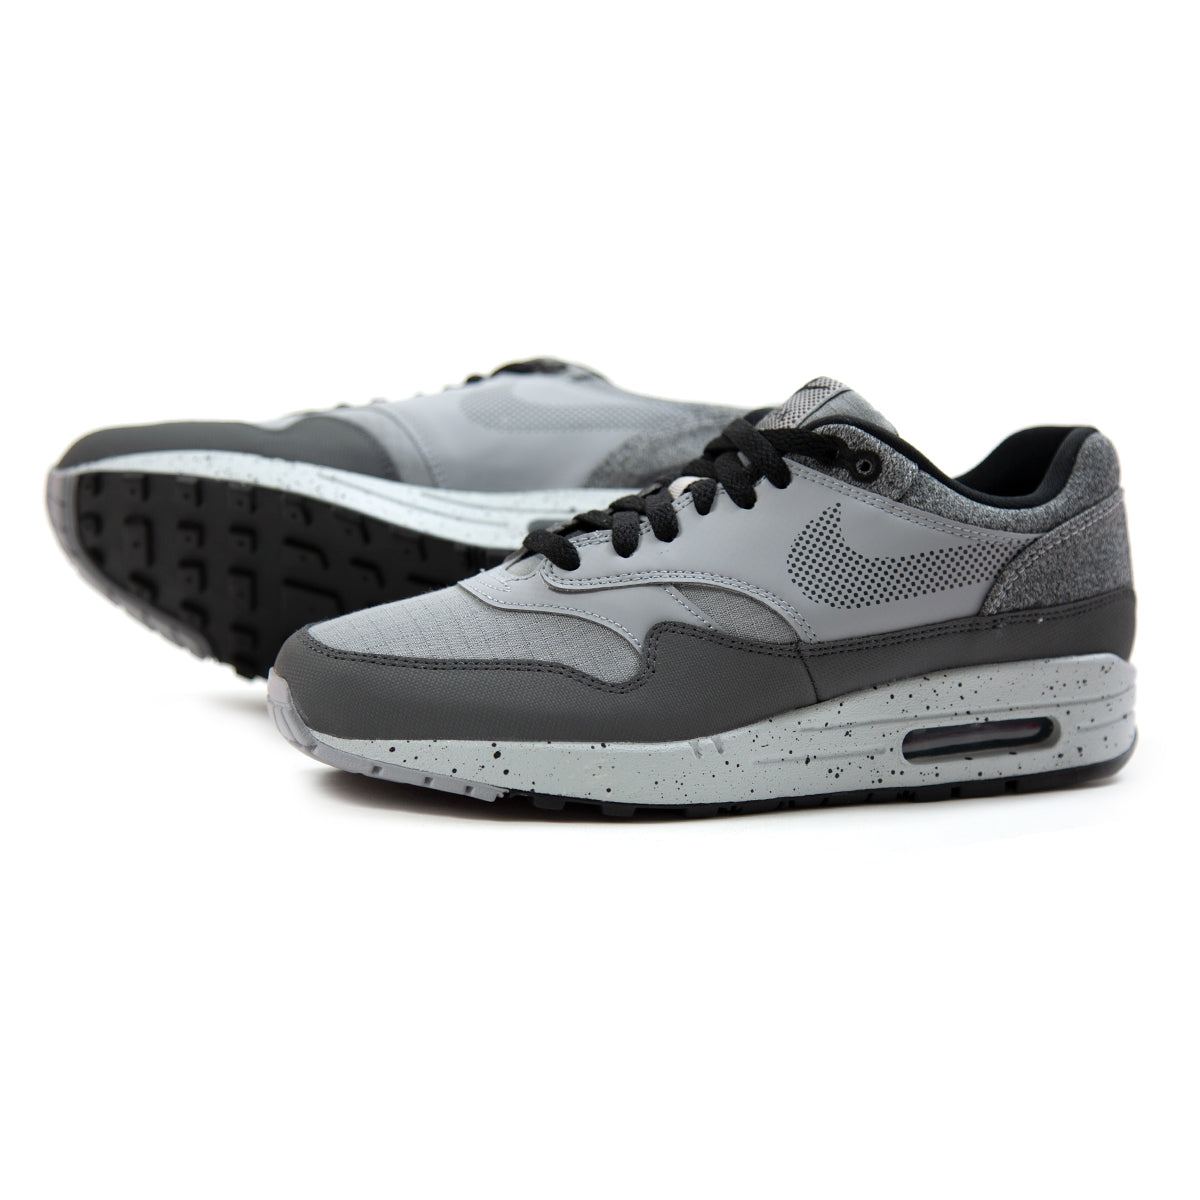 huge selection of 5b626 27574 Nike Air Max 1 SE (Wolf Grey Anthracite Dark Grey Black)